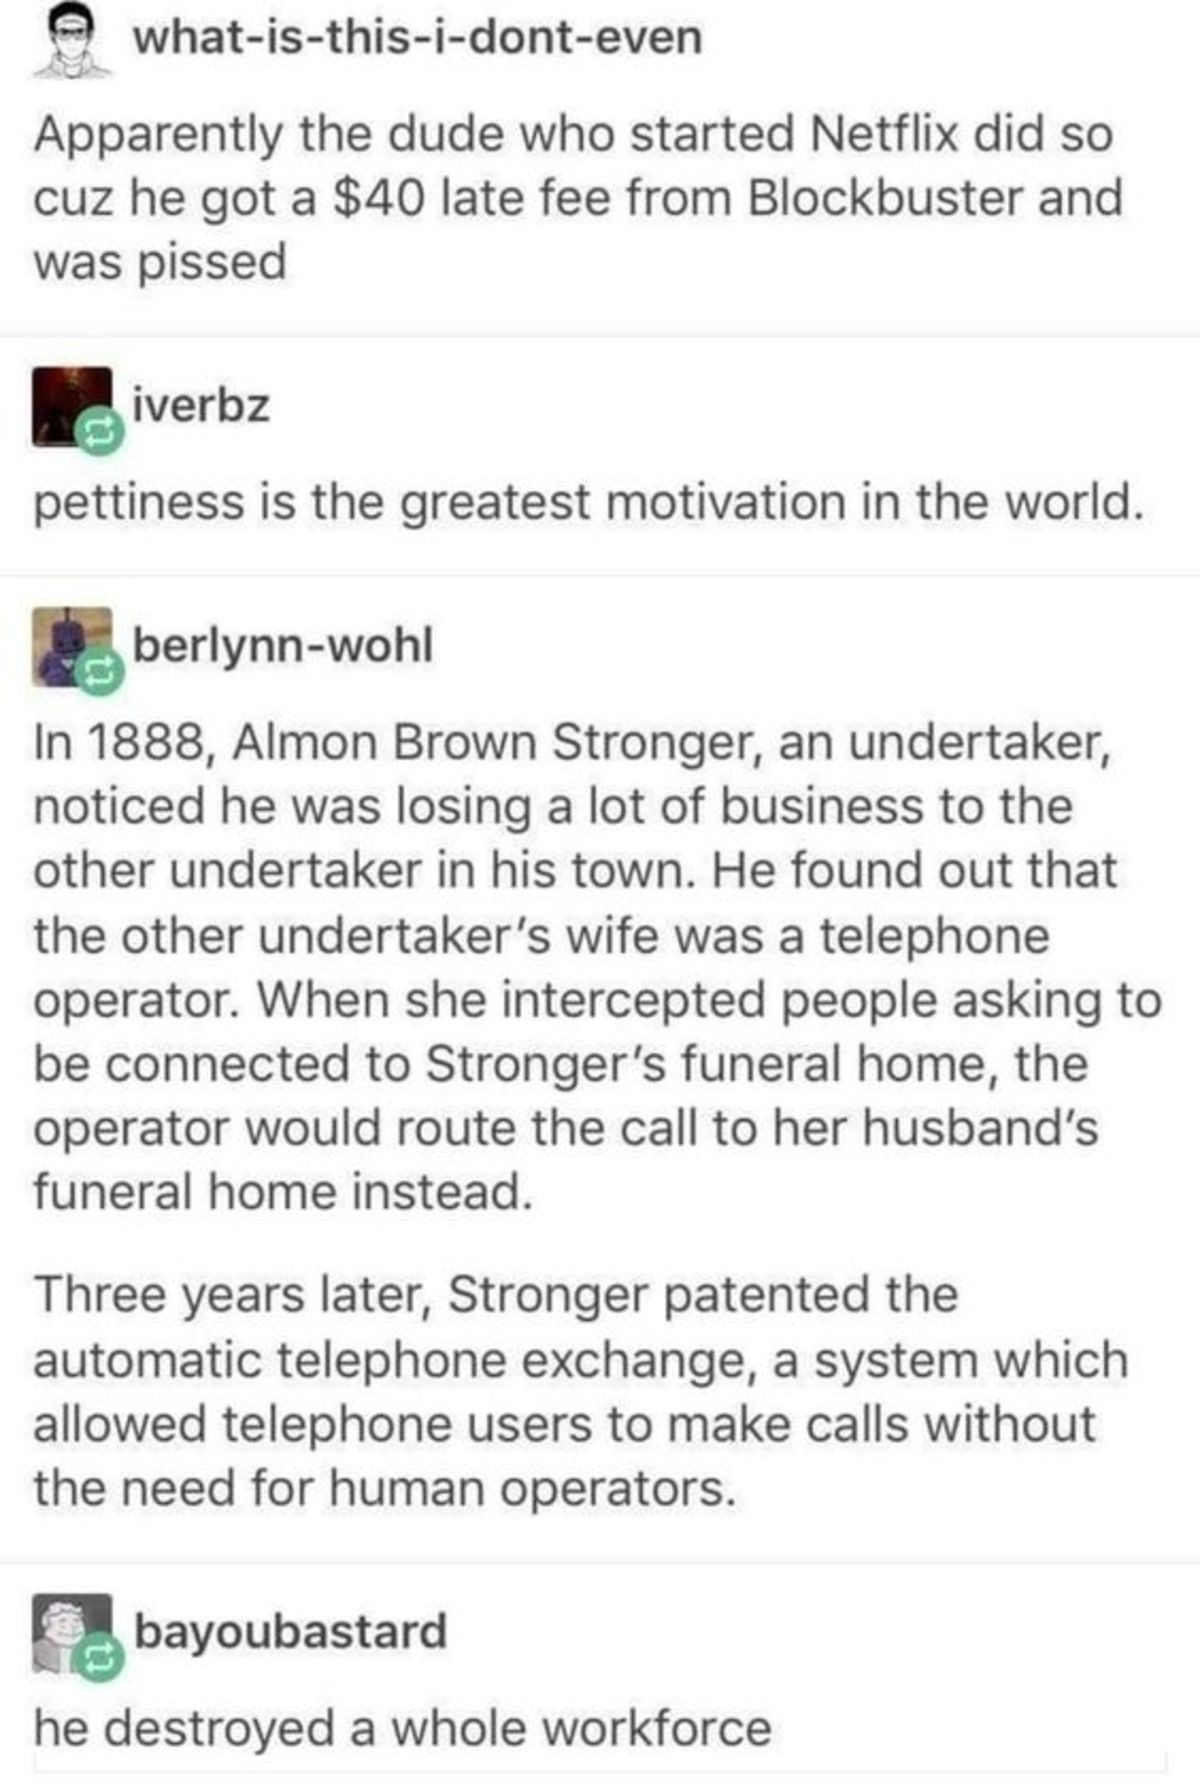 Petty Innovation. .. That bitch was stealing from him so he created a a system that benefited humanity as a whole while still over the people that wronged him. 10/10. Too bad for th